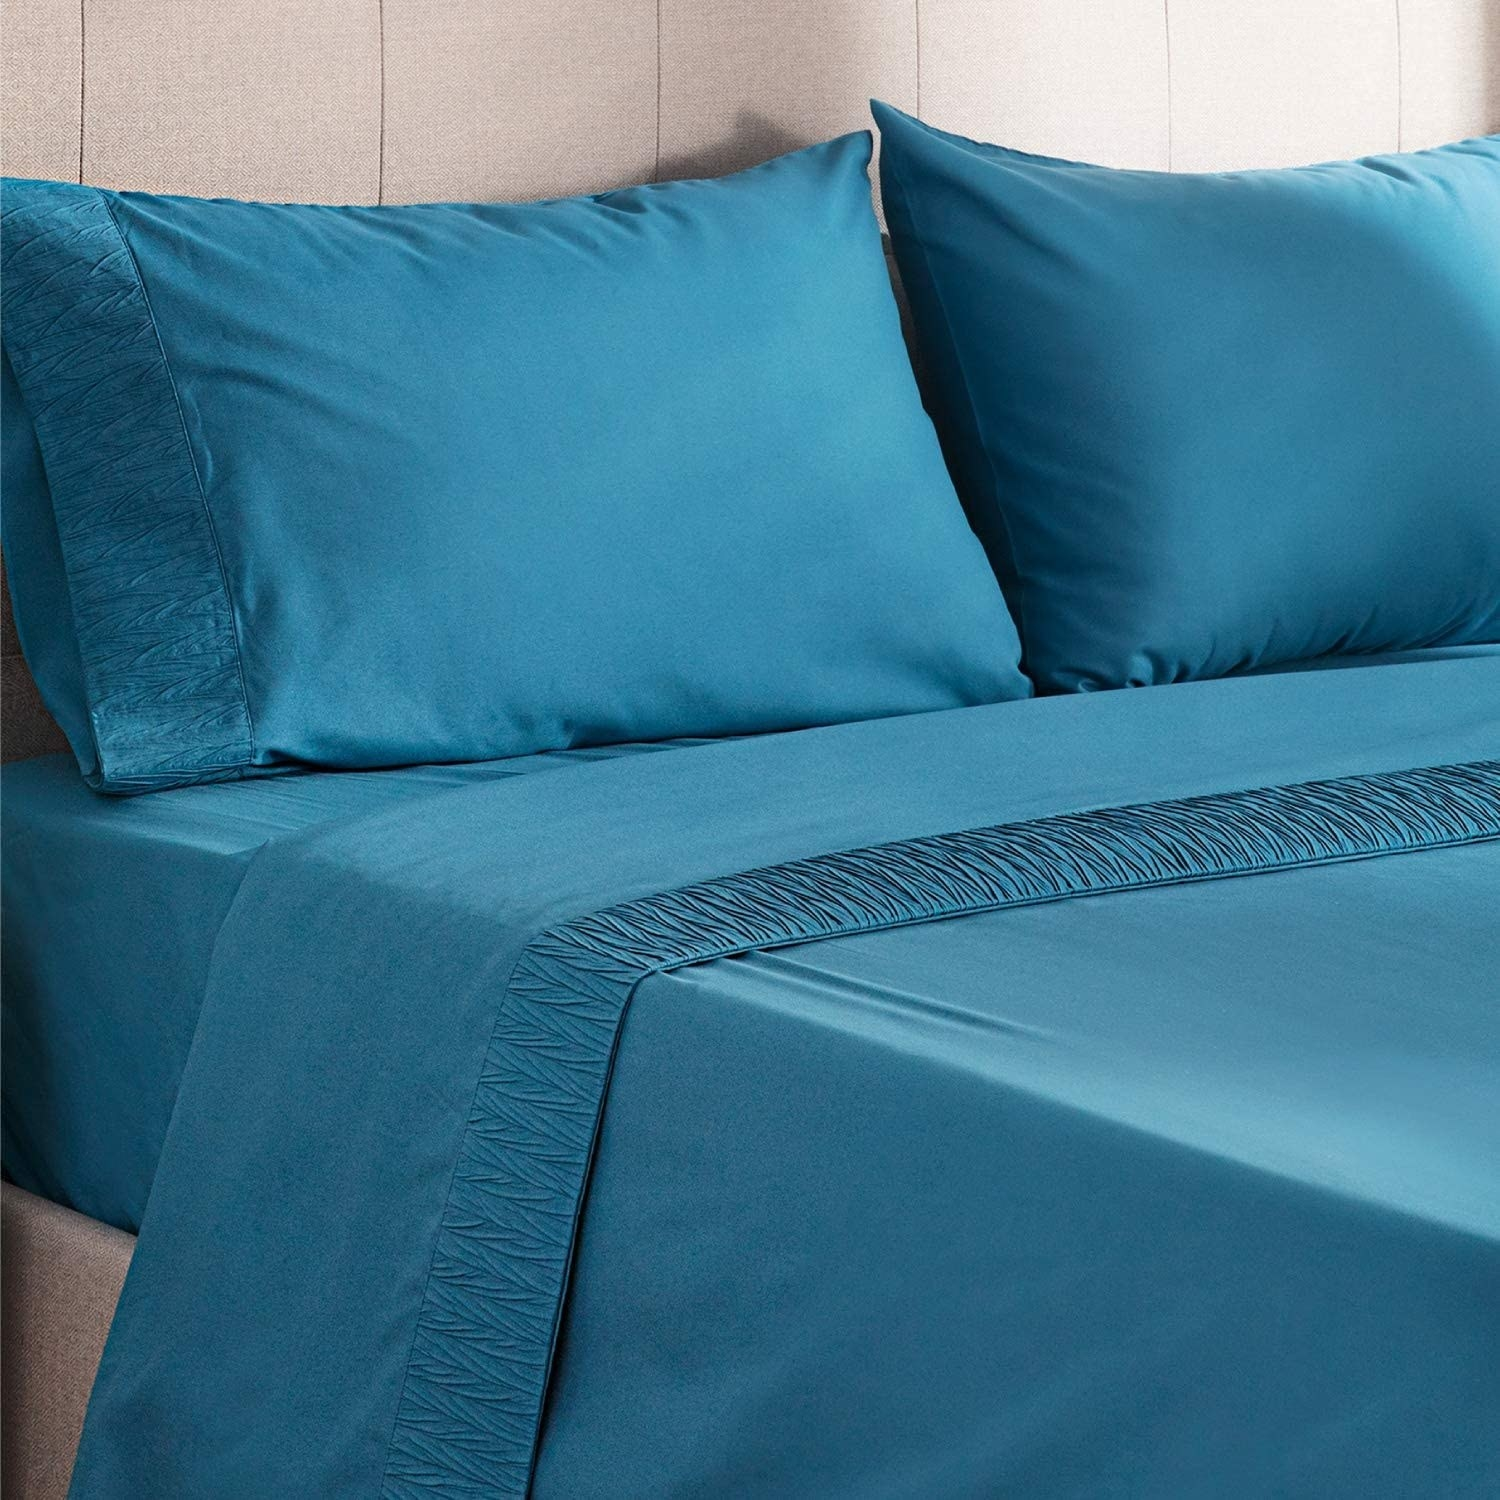 The sheets in teal on a bed